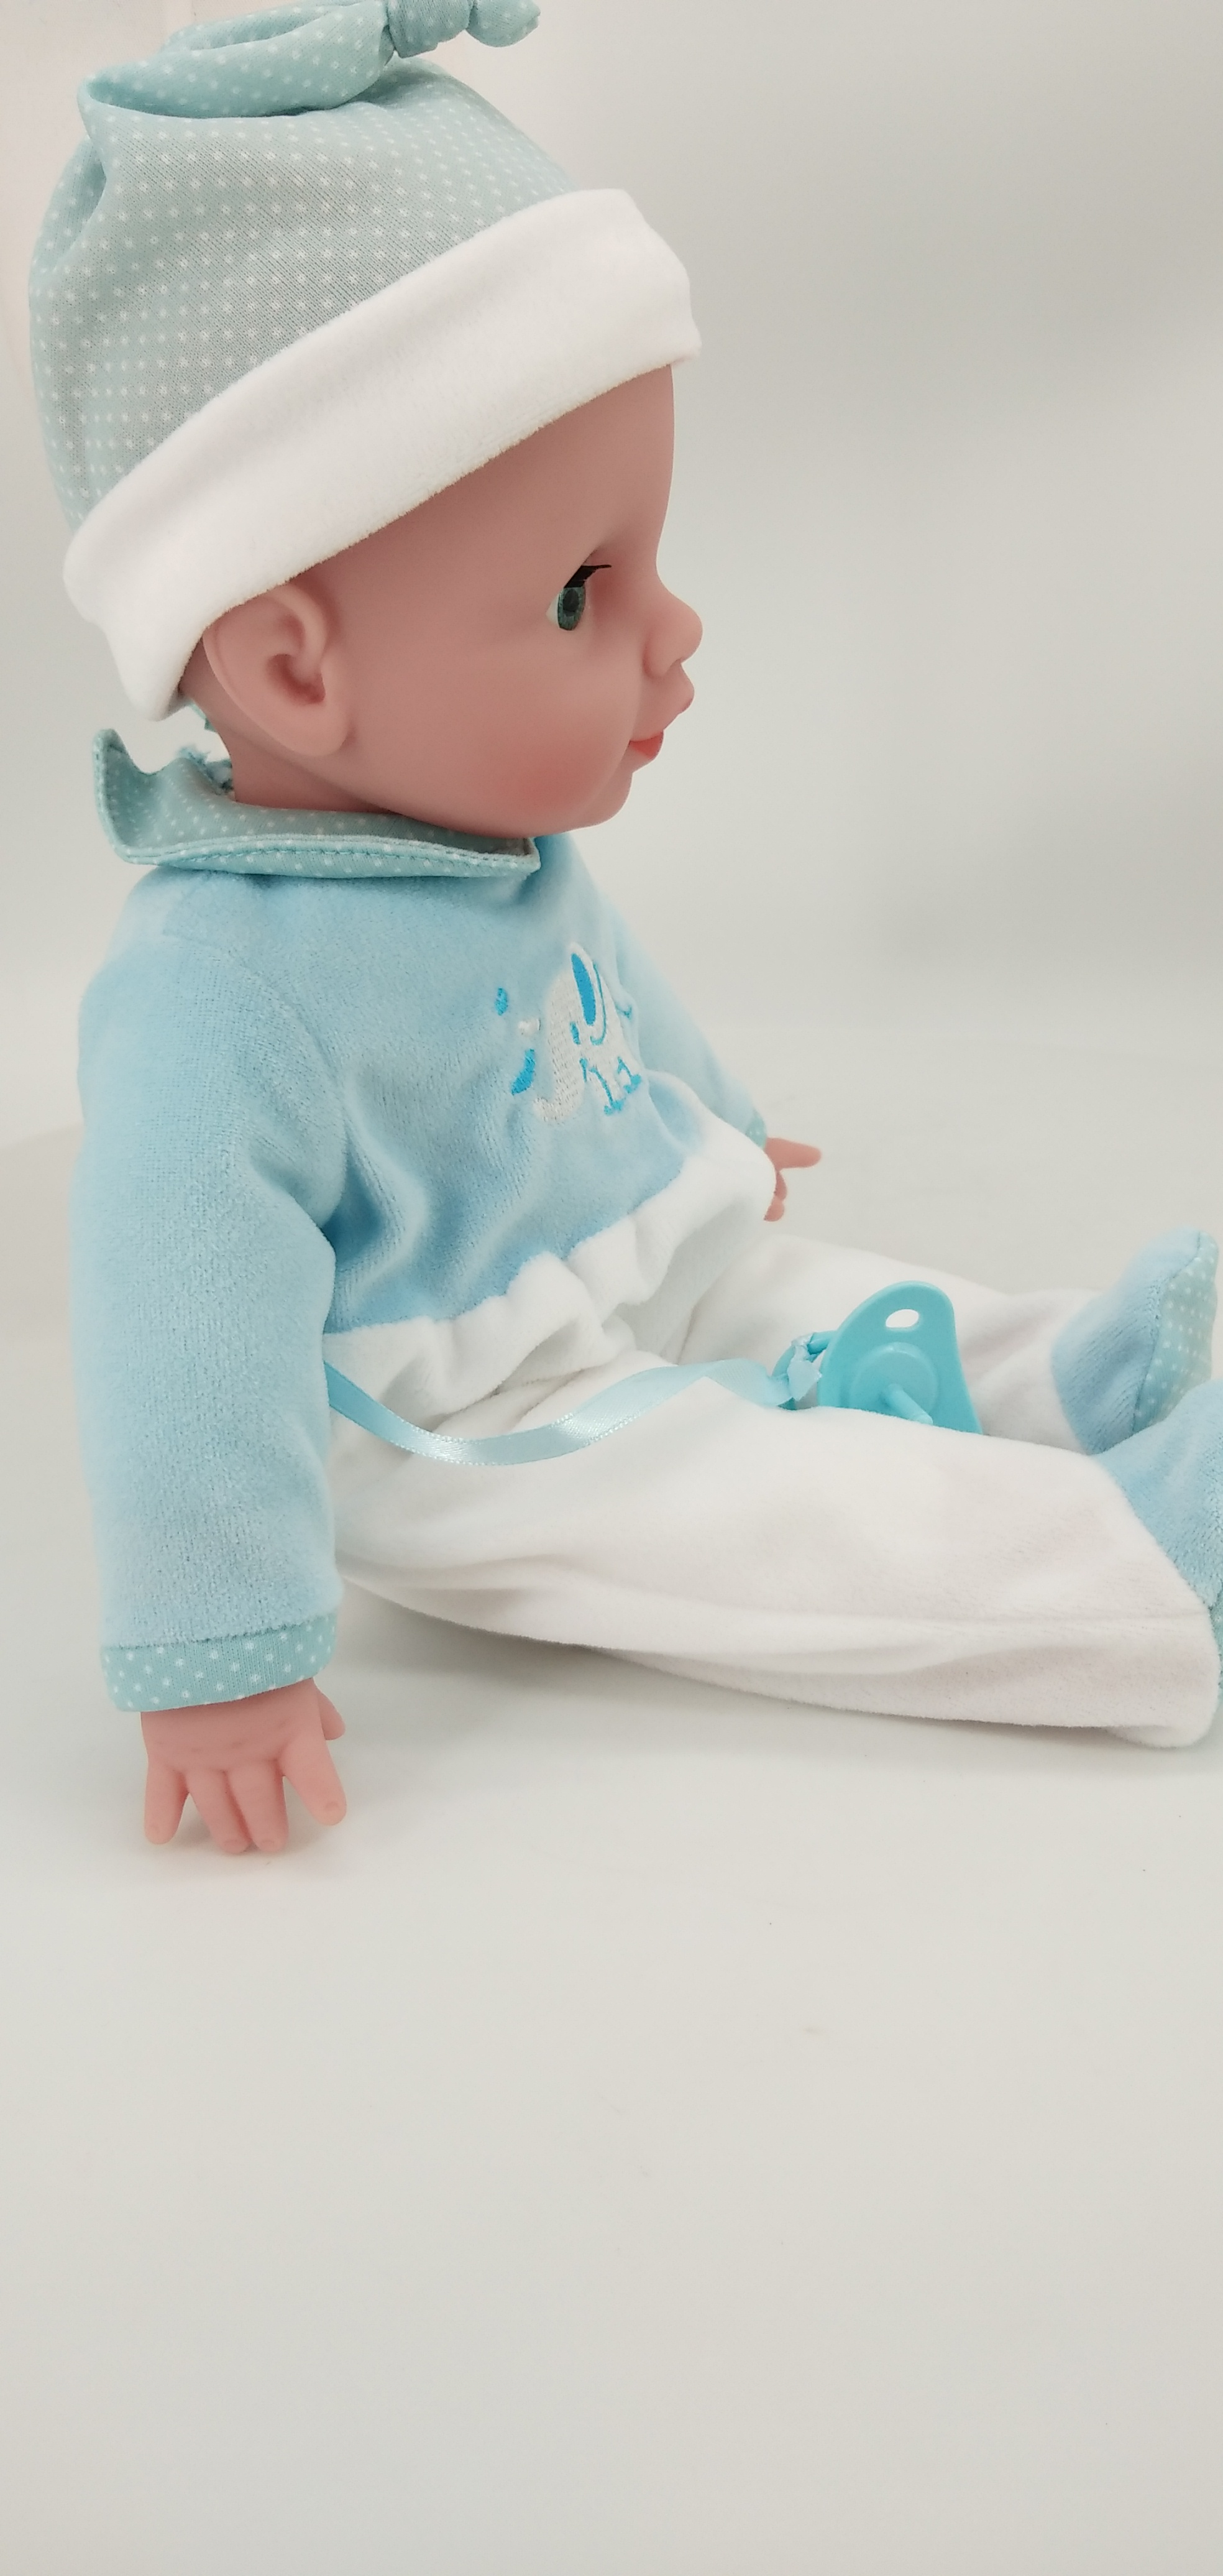 cute baby vinyl dolls supplier